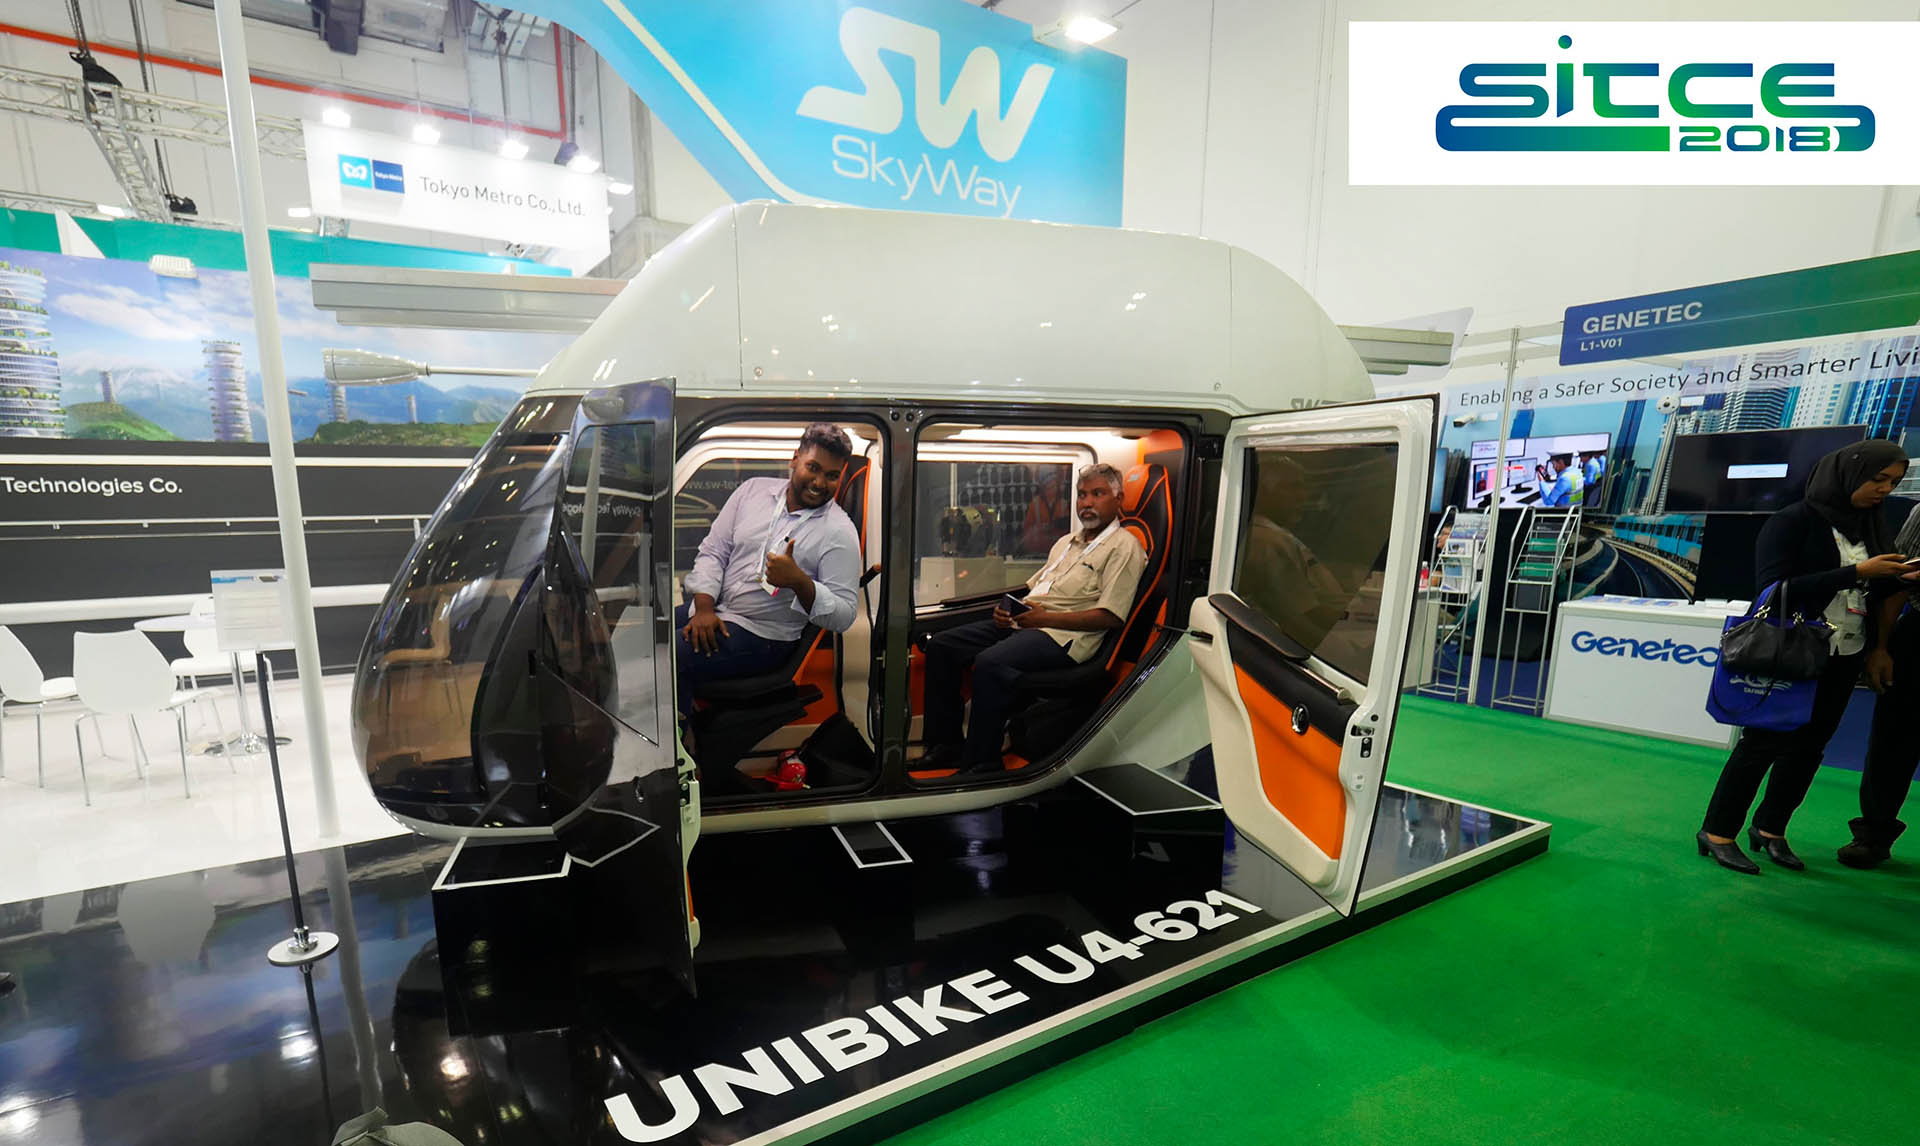 SkyWay at the International Transport Congress in Singapore